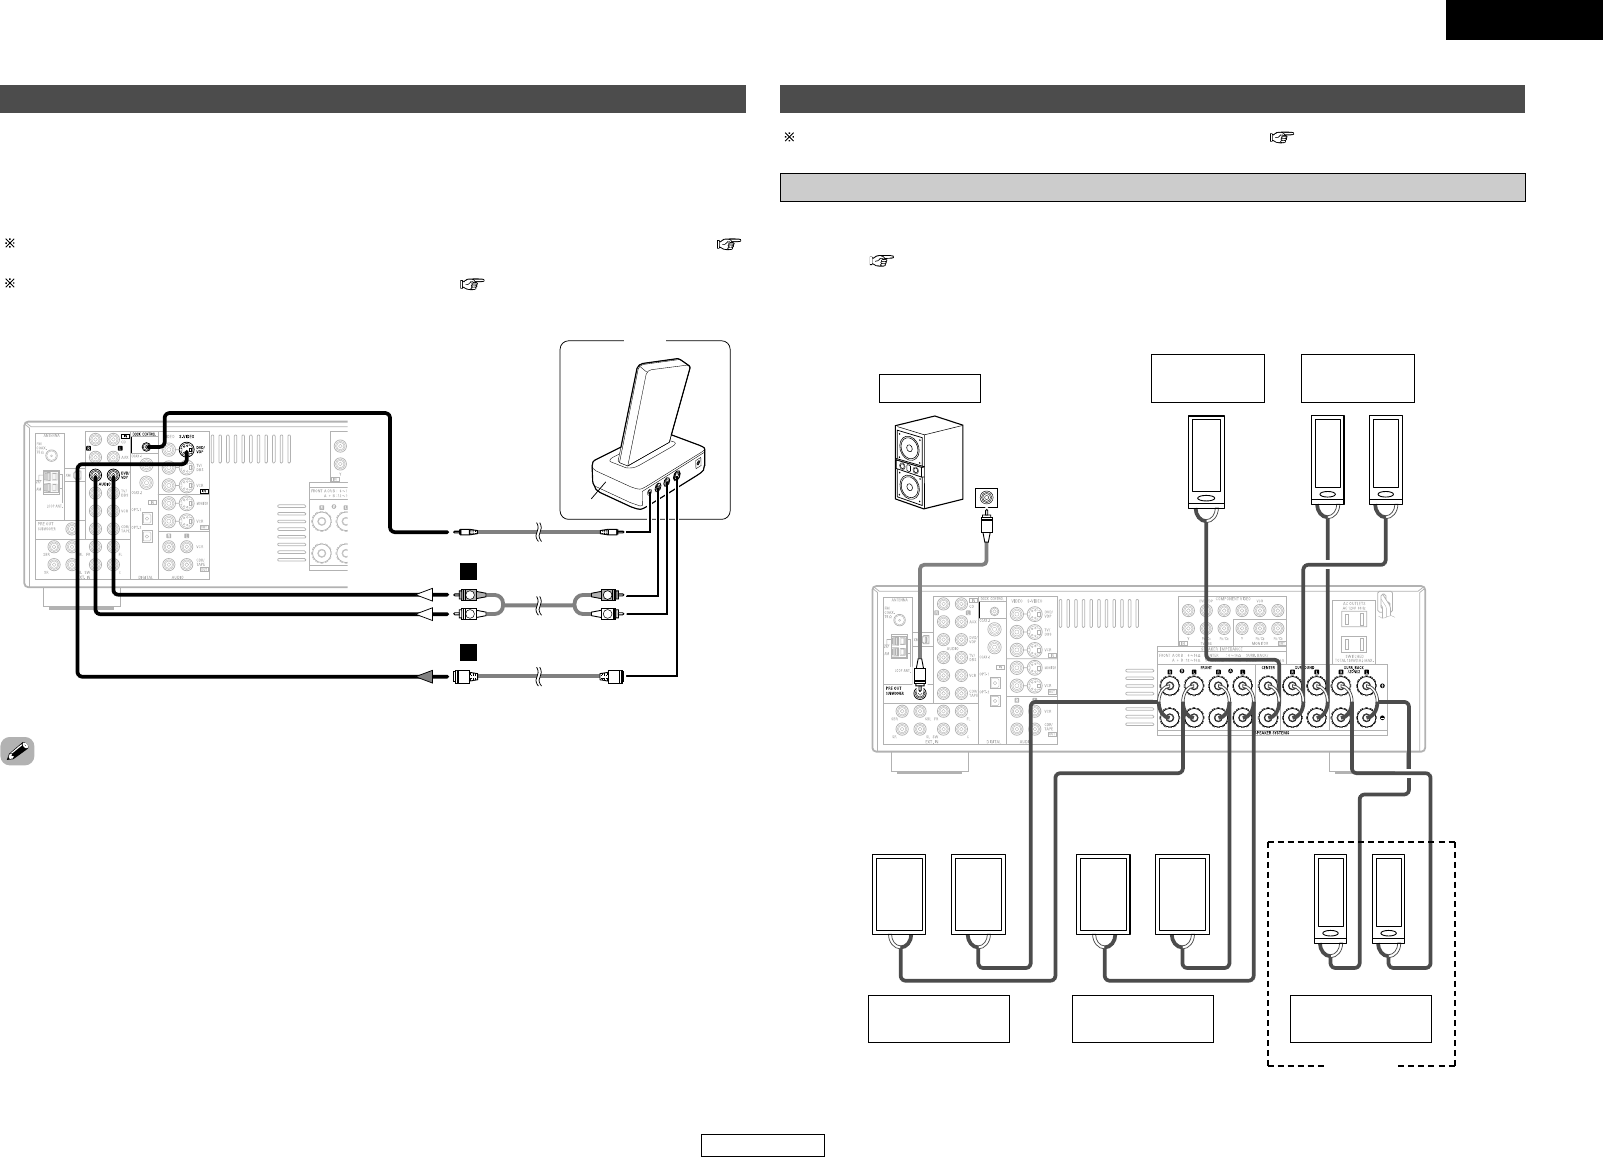 Page 17 of Denon Stereo Receiver AVR-587 User Guide